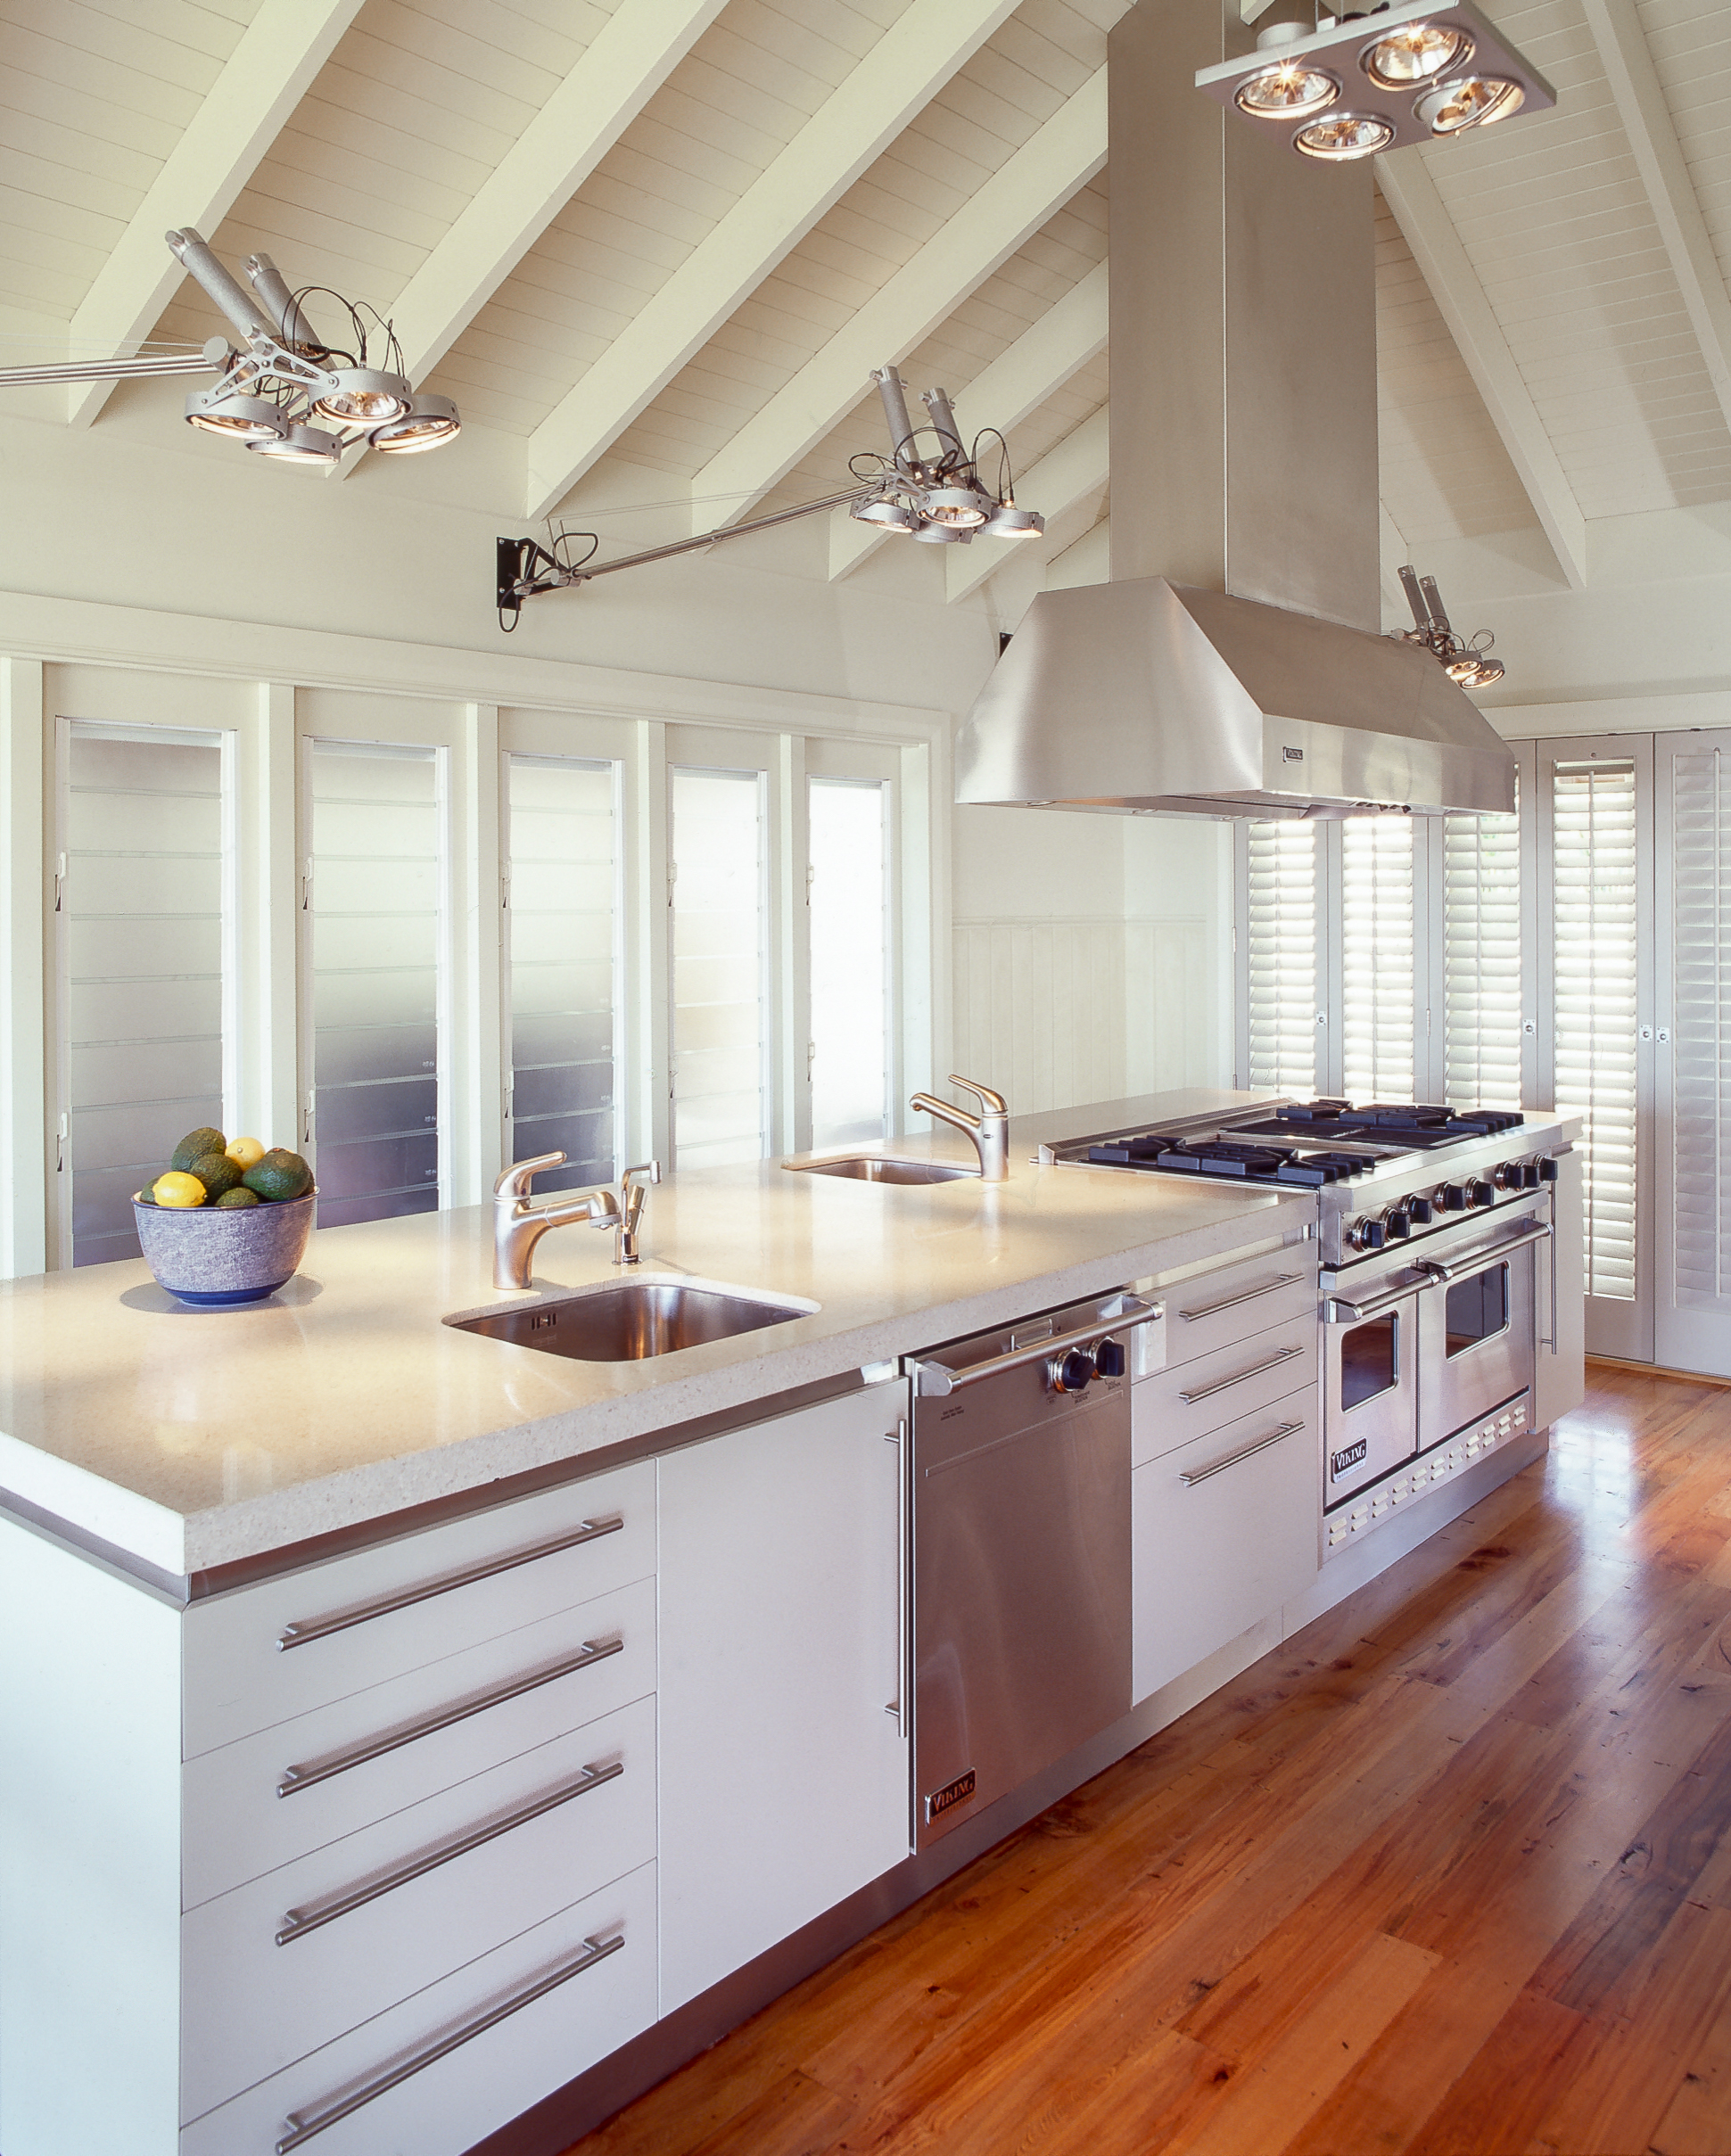 Gerald Lopez Photography - Kitchen by design